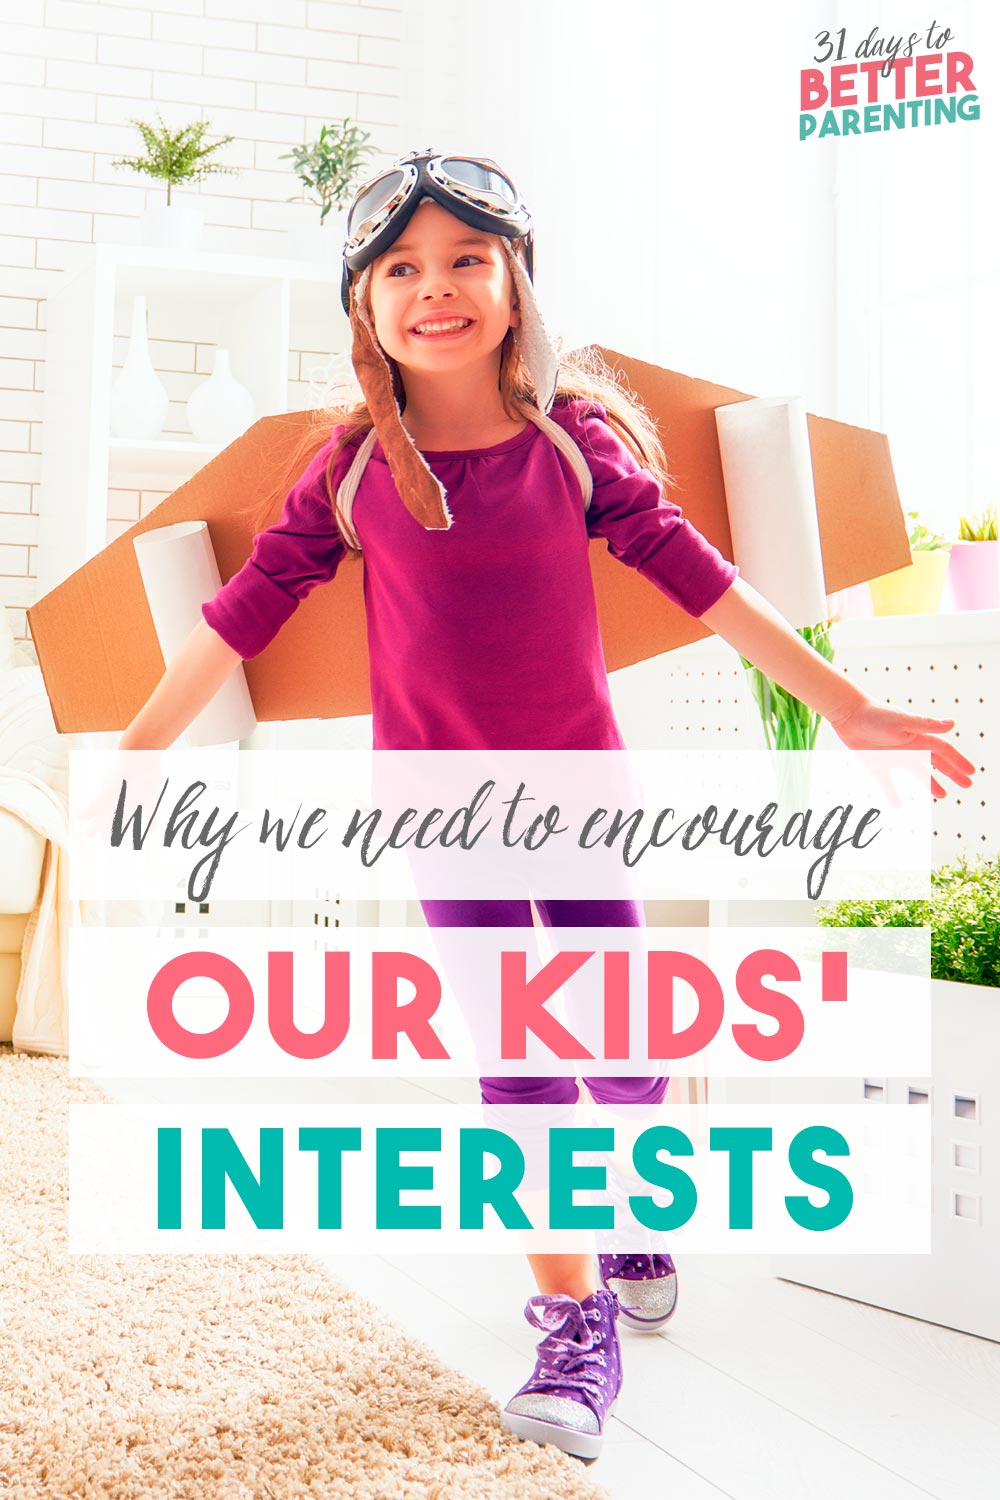 Do your kids have a passion for hobbies? Here's why we should encourage children's interests, no matter how strange or different they may seem to us. (This post contains affiliate links—thank you for your support!)